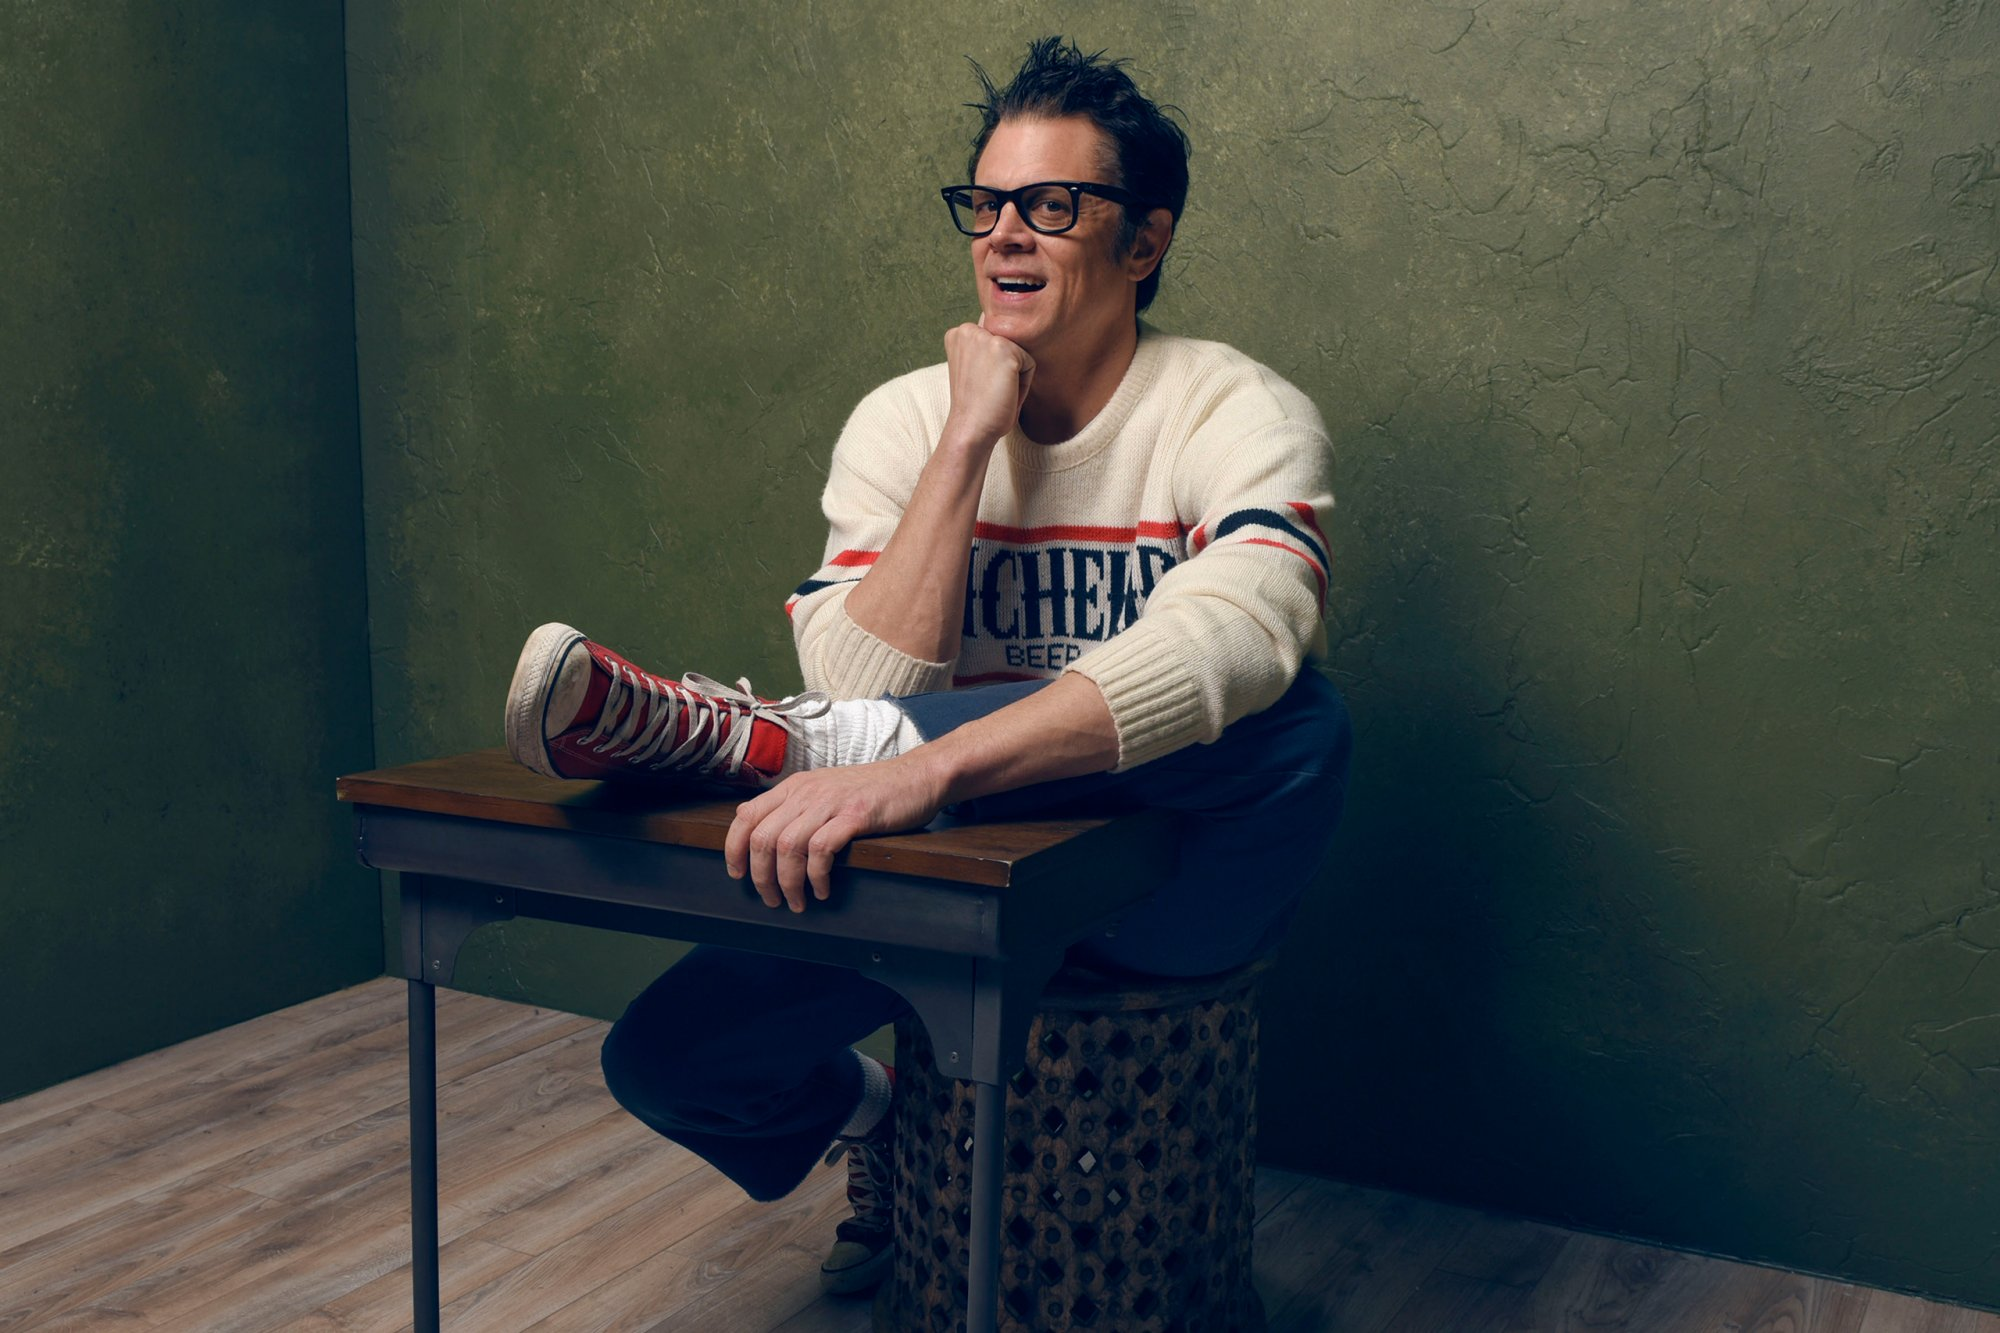 Johnny Knoxville Desktop wallpapers